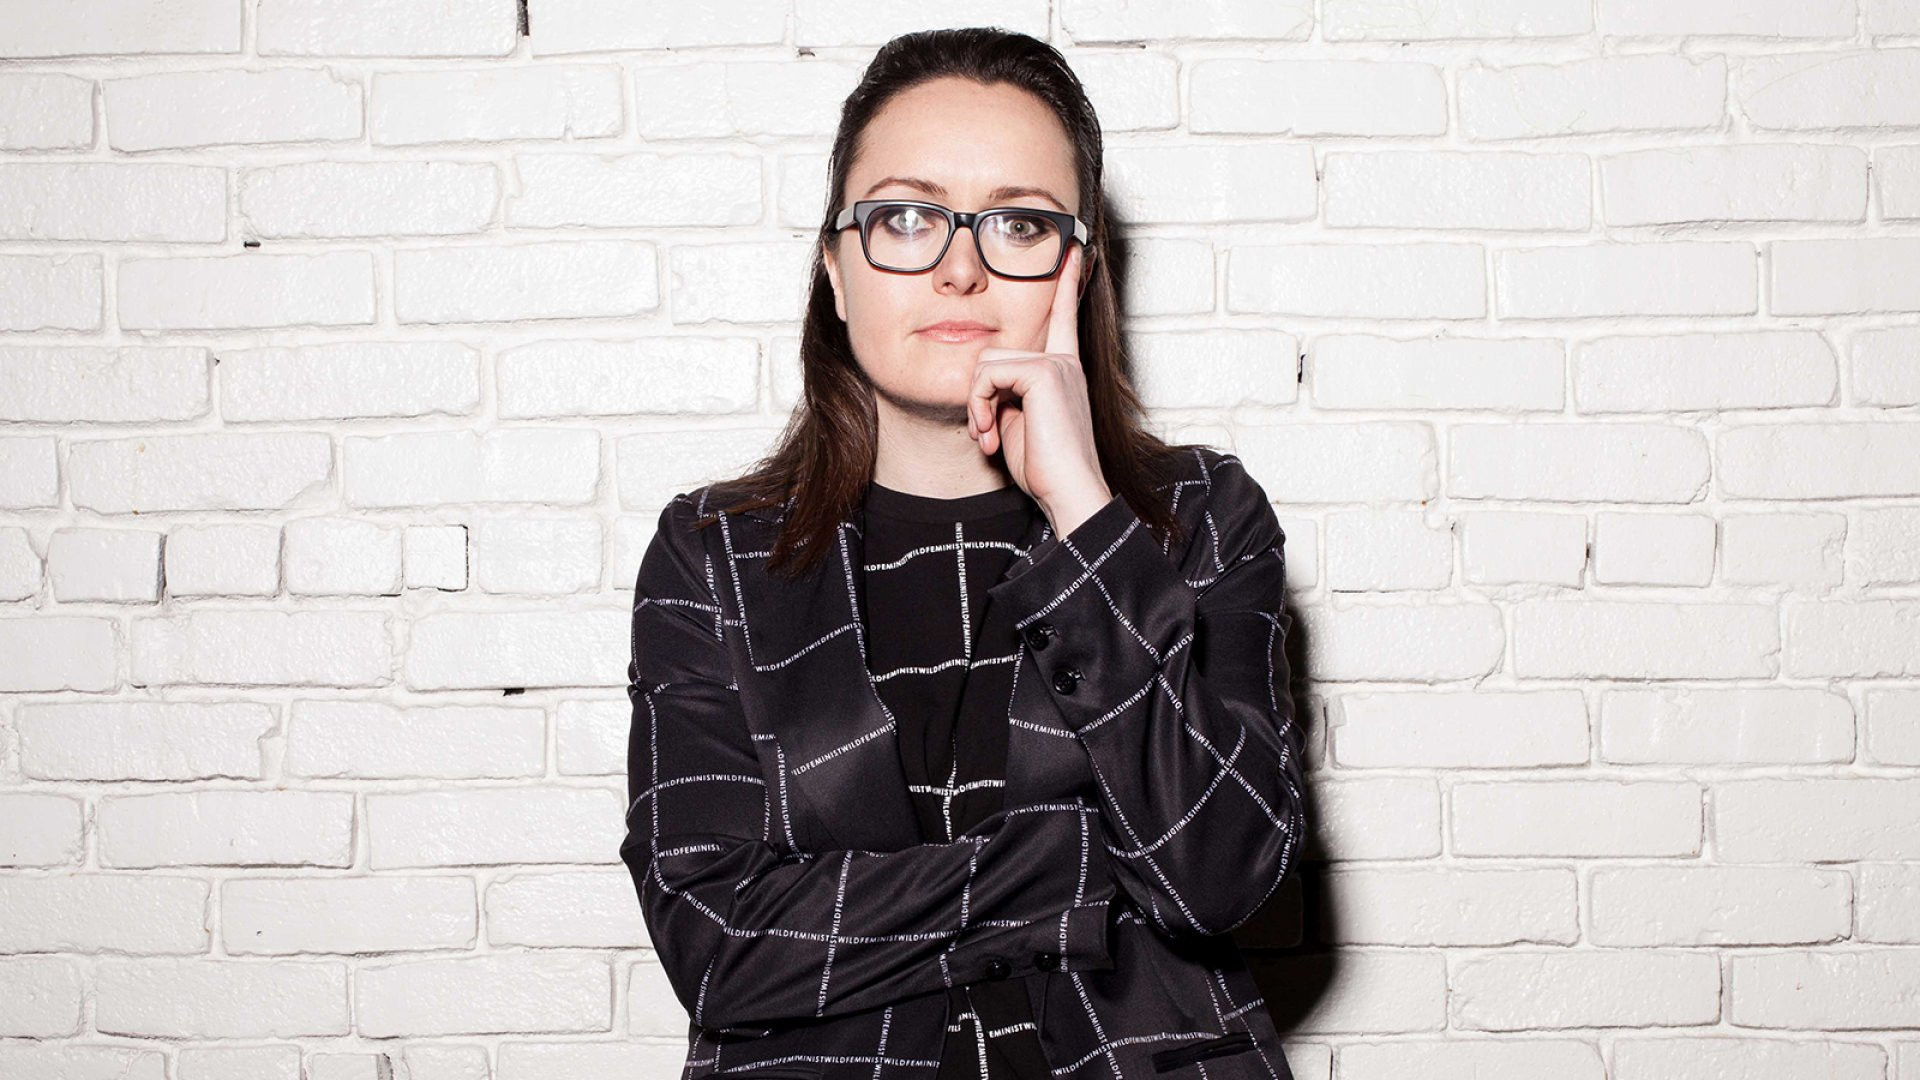 Wildfang founder Emma Mcilroy.